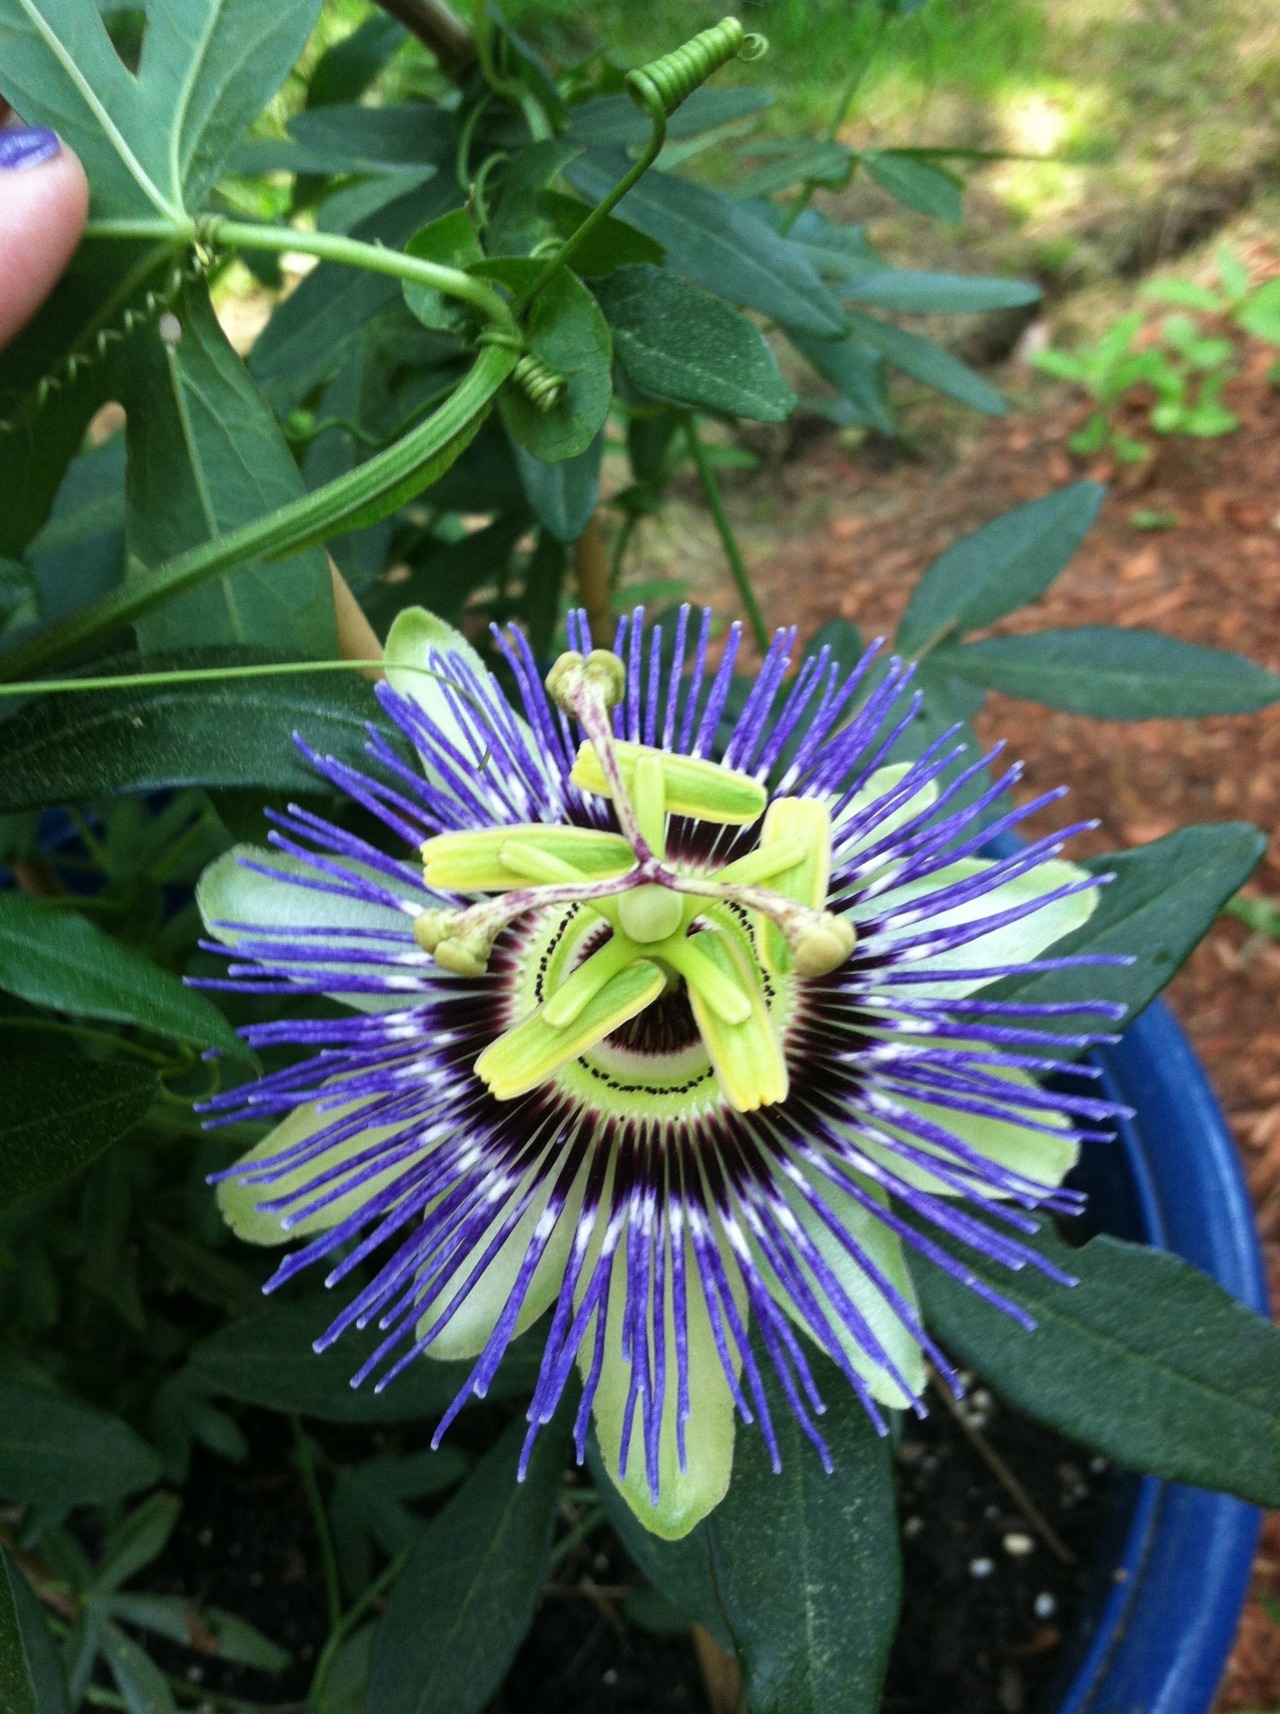 My mom's Passion Flower plant is in bloom!